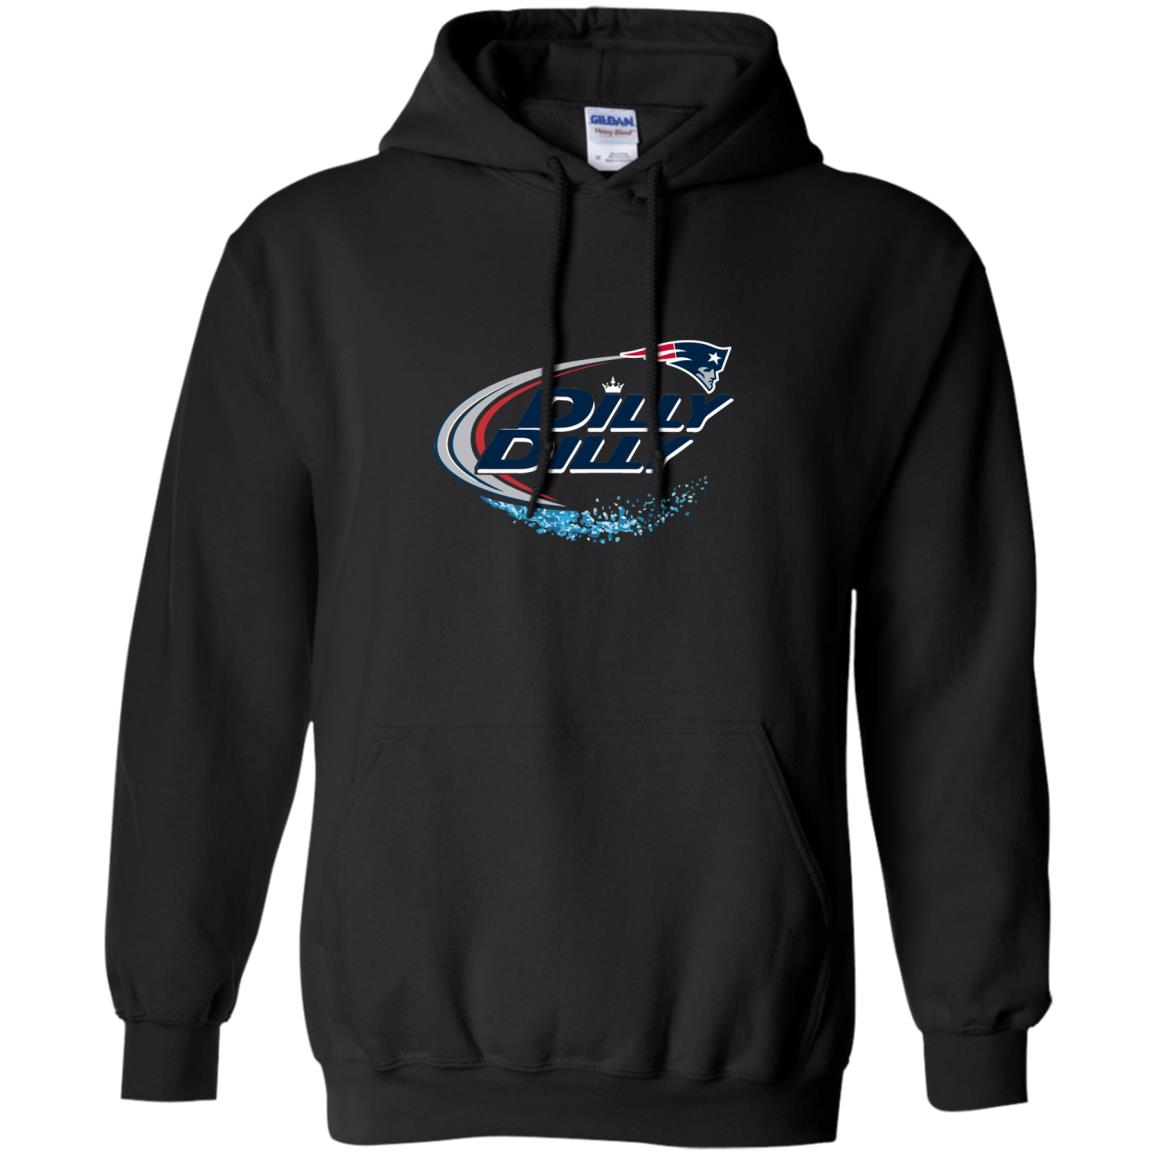 image 1559 - New England Patriots Dilly Dilly  shirt, sweatshirt, hoodie